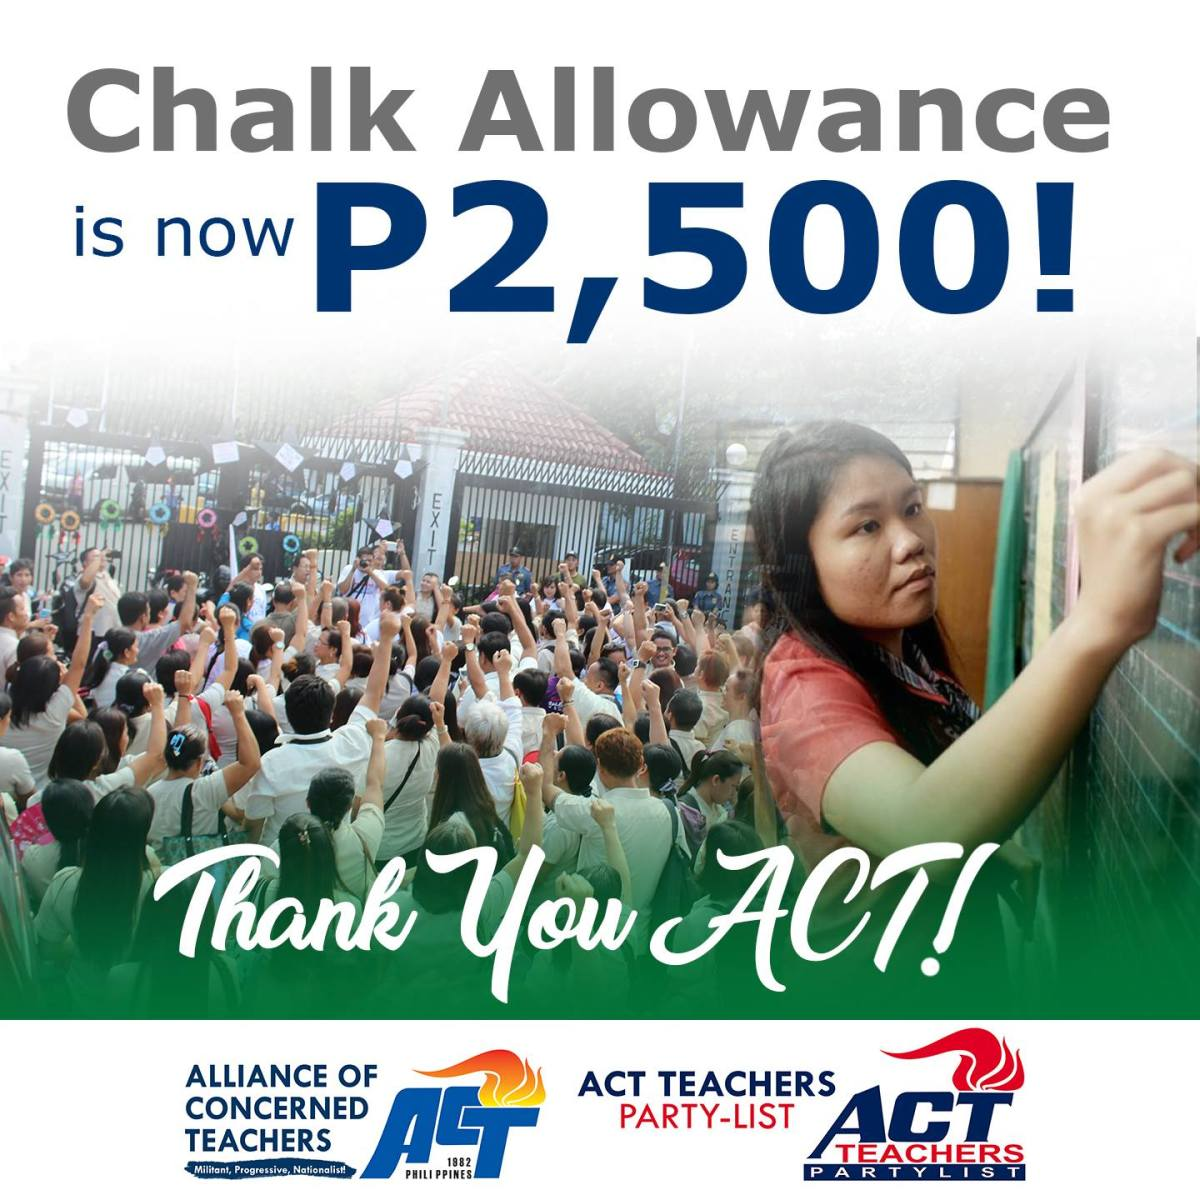 Public school teachers to get P2500 chalk allowance for SY 2017-2018